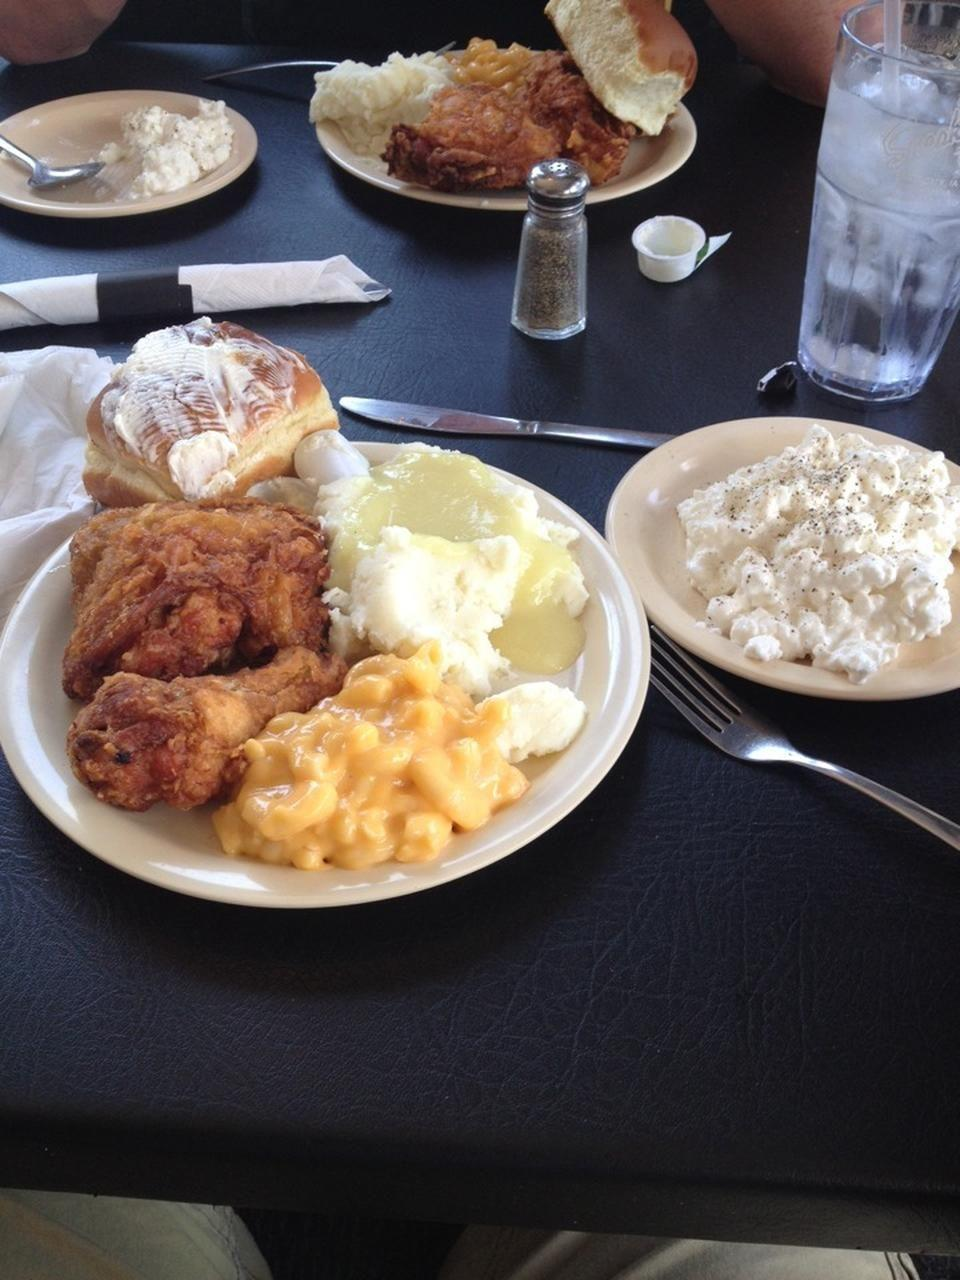 """<p><a href=""""https://www.tripadvisor.com/Restaurant_Review-g54805-d3519358-Reviews-Sneaky_s_Chicken-Sioux_Falls_South_Dakota.html"""" rel=""""nofollow noopener"""" target=""""_blank"""" data-ylk=""""slk:Sneaky's Chicken"""" class=""""link rapid-noclick-resp"""">Sneaky's Chicken</a>, Sioux Falls</p><p>Best chicken in town and they have the best gravy for your fries! - Foursquare user <a href=""""https://foursquare.com/wicklessmolly"""" rel=""""nofollow noopener"""" target=""""_blank"""" data-ylk=""""slk:Wicklessmolly"""" class=""""link rapid-noclick-resp"""">Wicklessmolly</a></p>"""